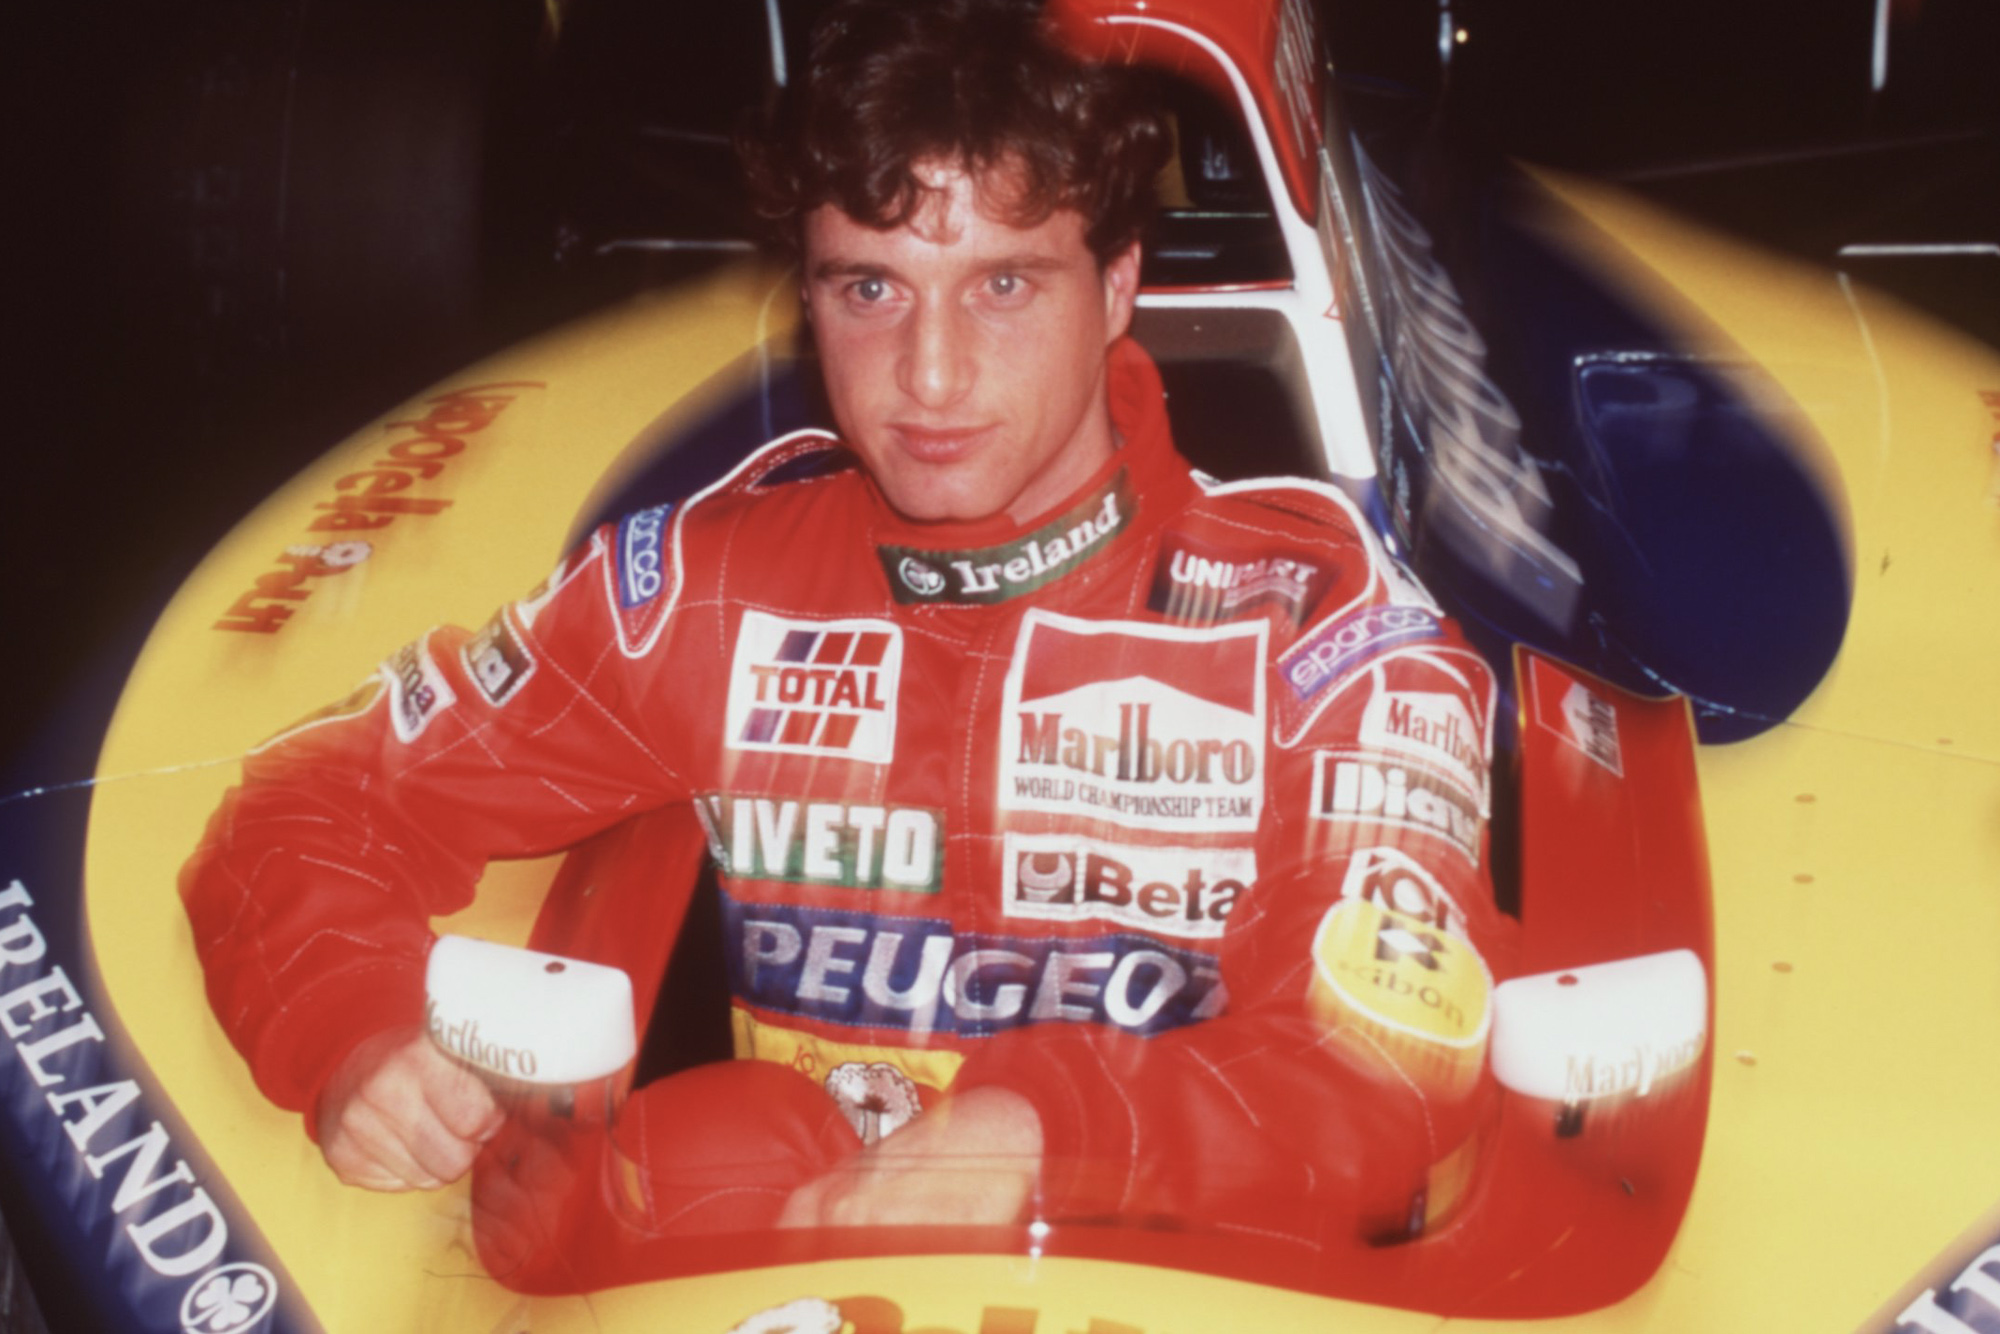 Eddie Irvine at the launch of the 1995 Jordan